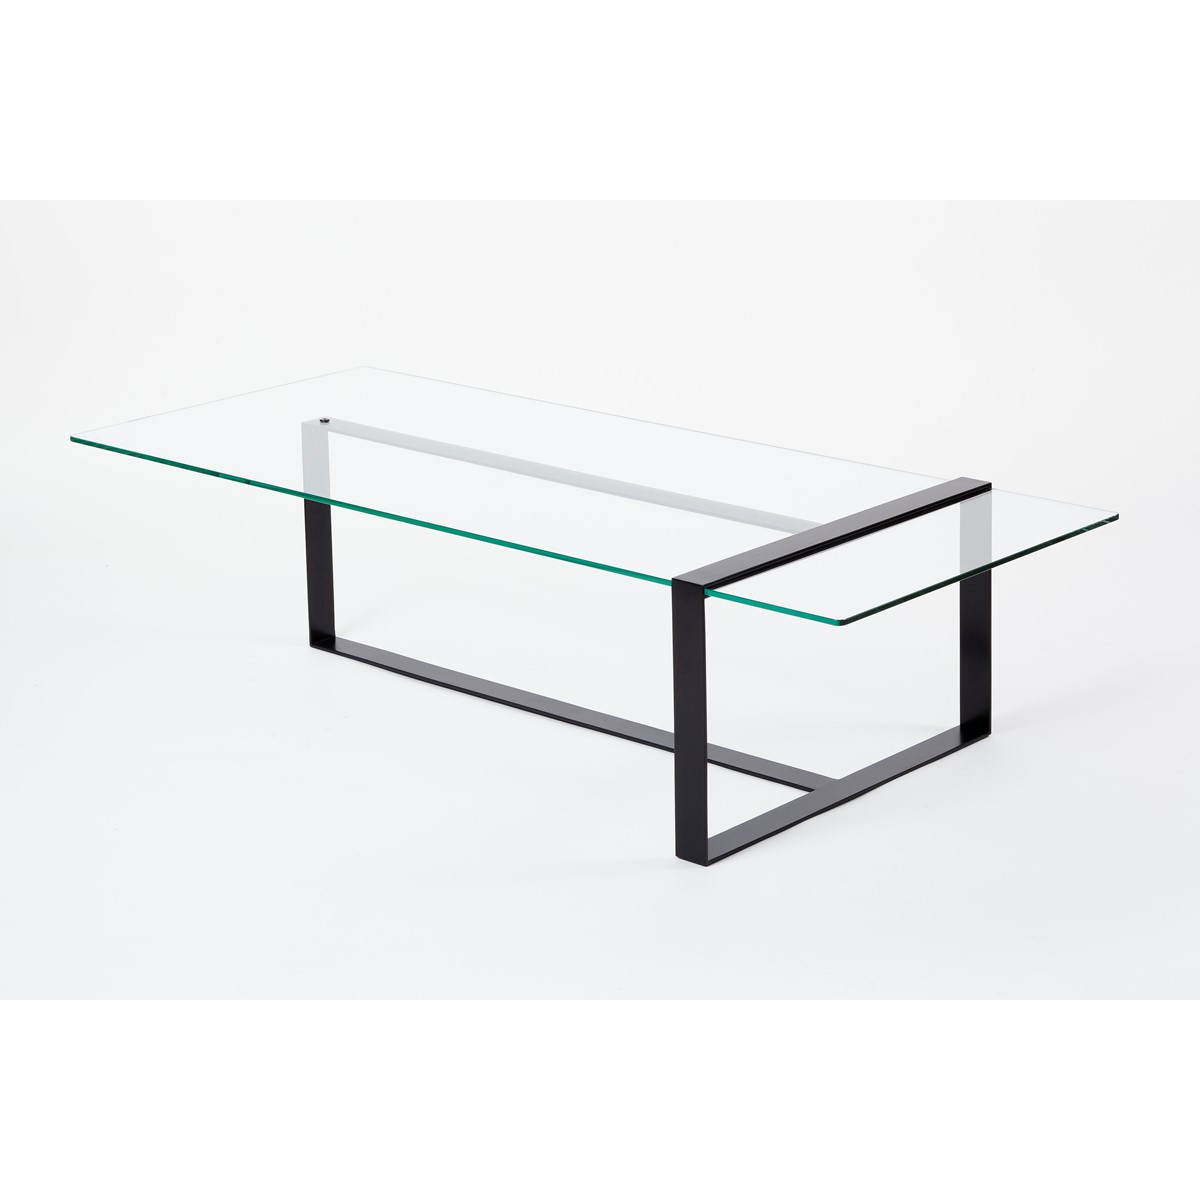 Table basse design acier et verre s verin alex de - Table basse acier design ...